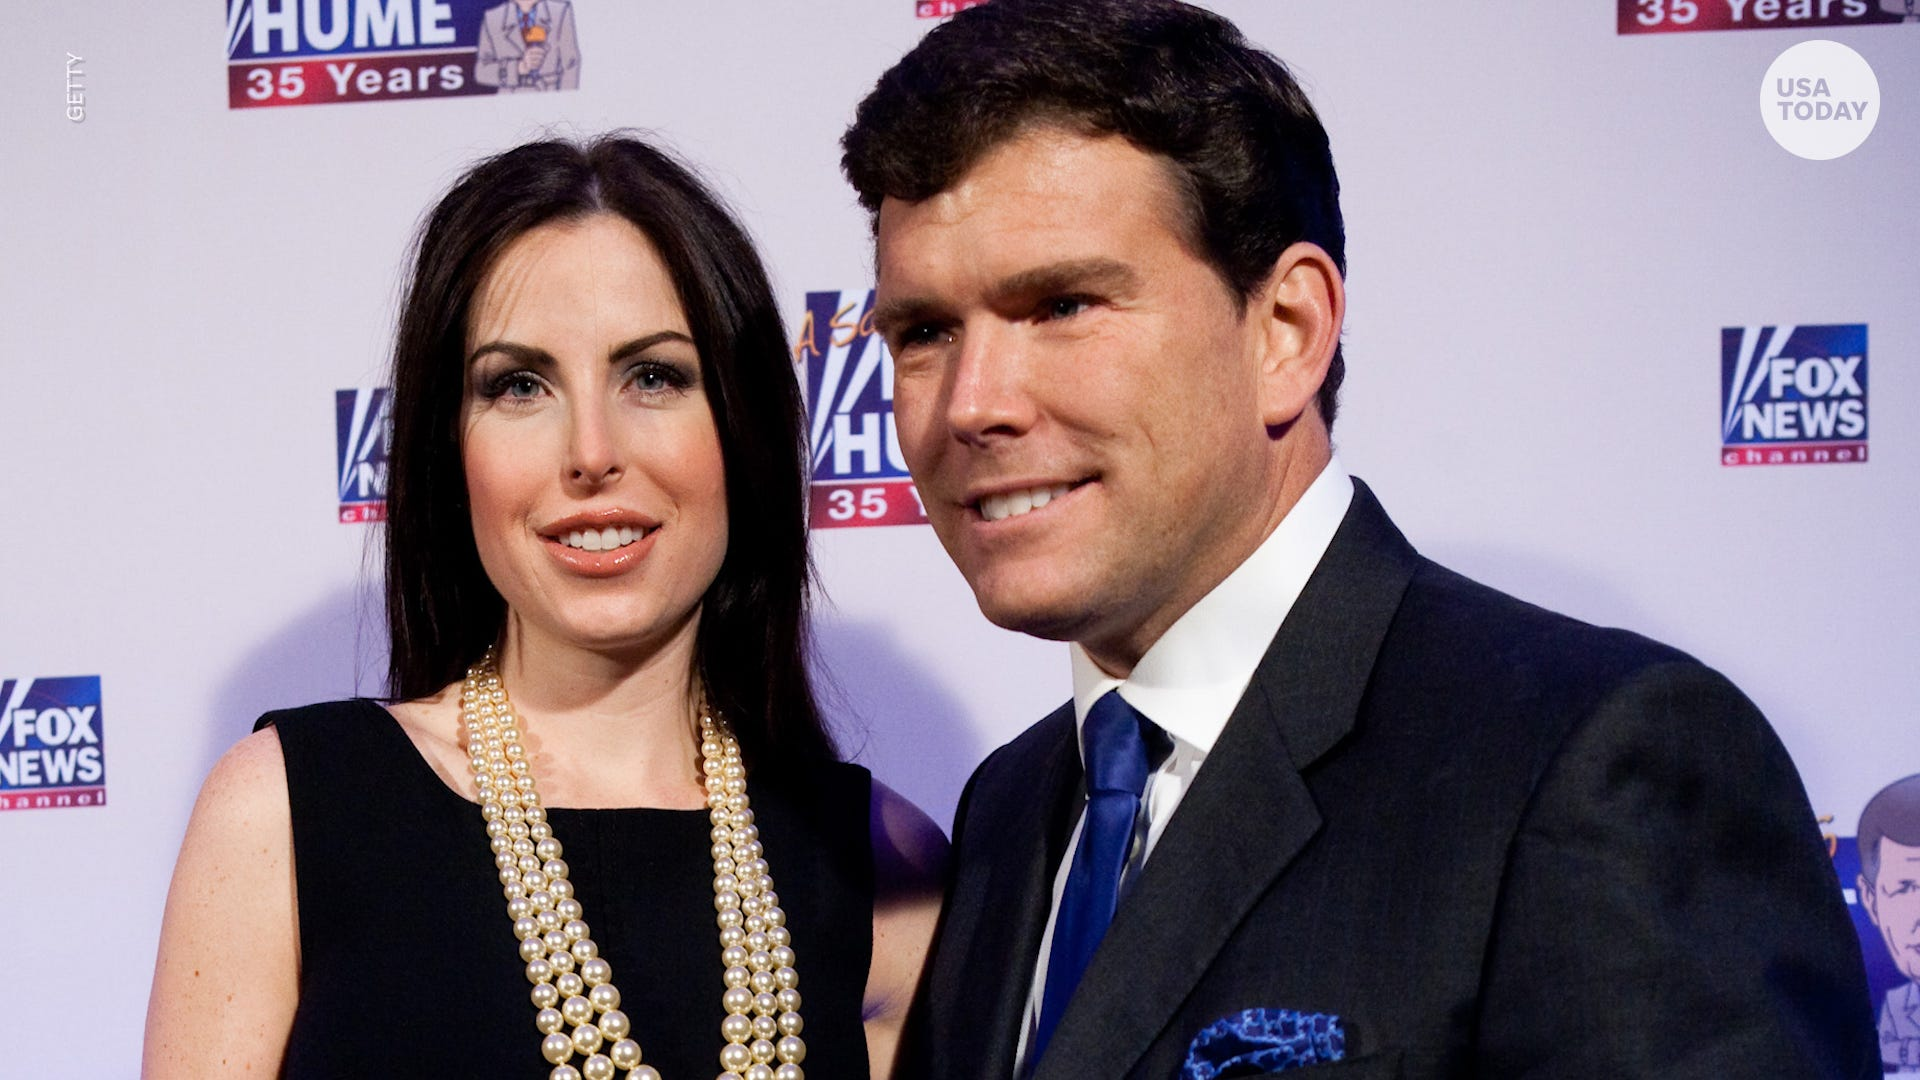 Fox News anchor Bret Baier recovering from car crash